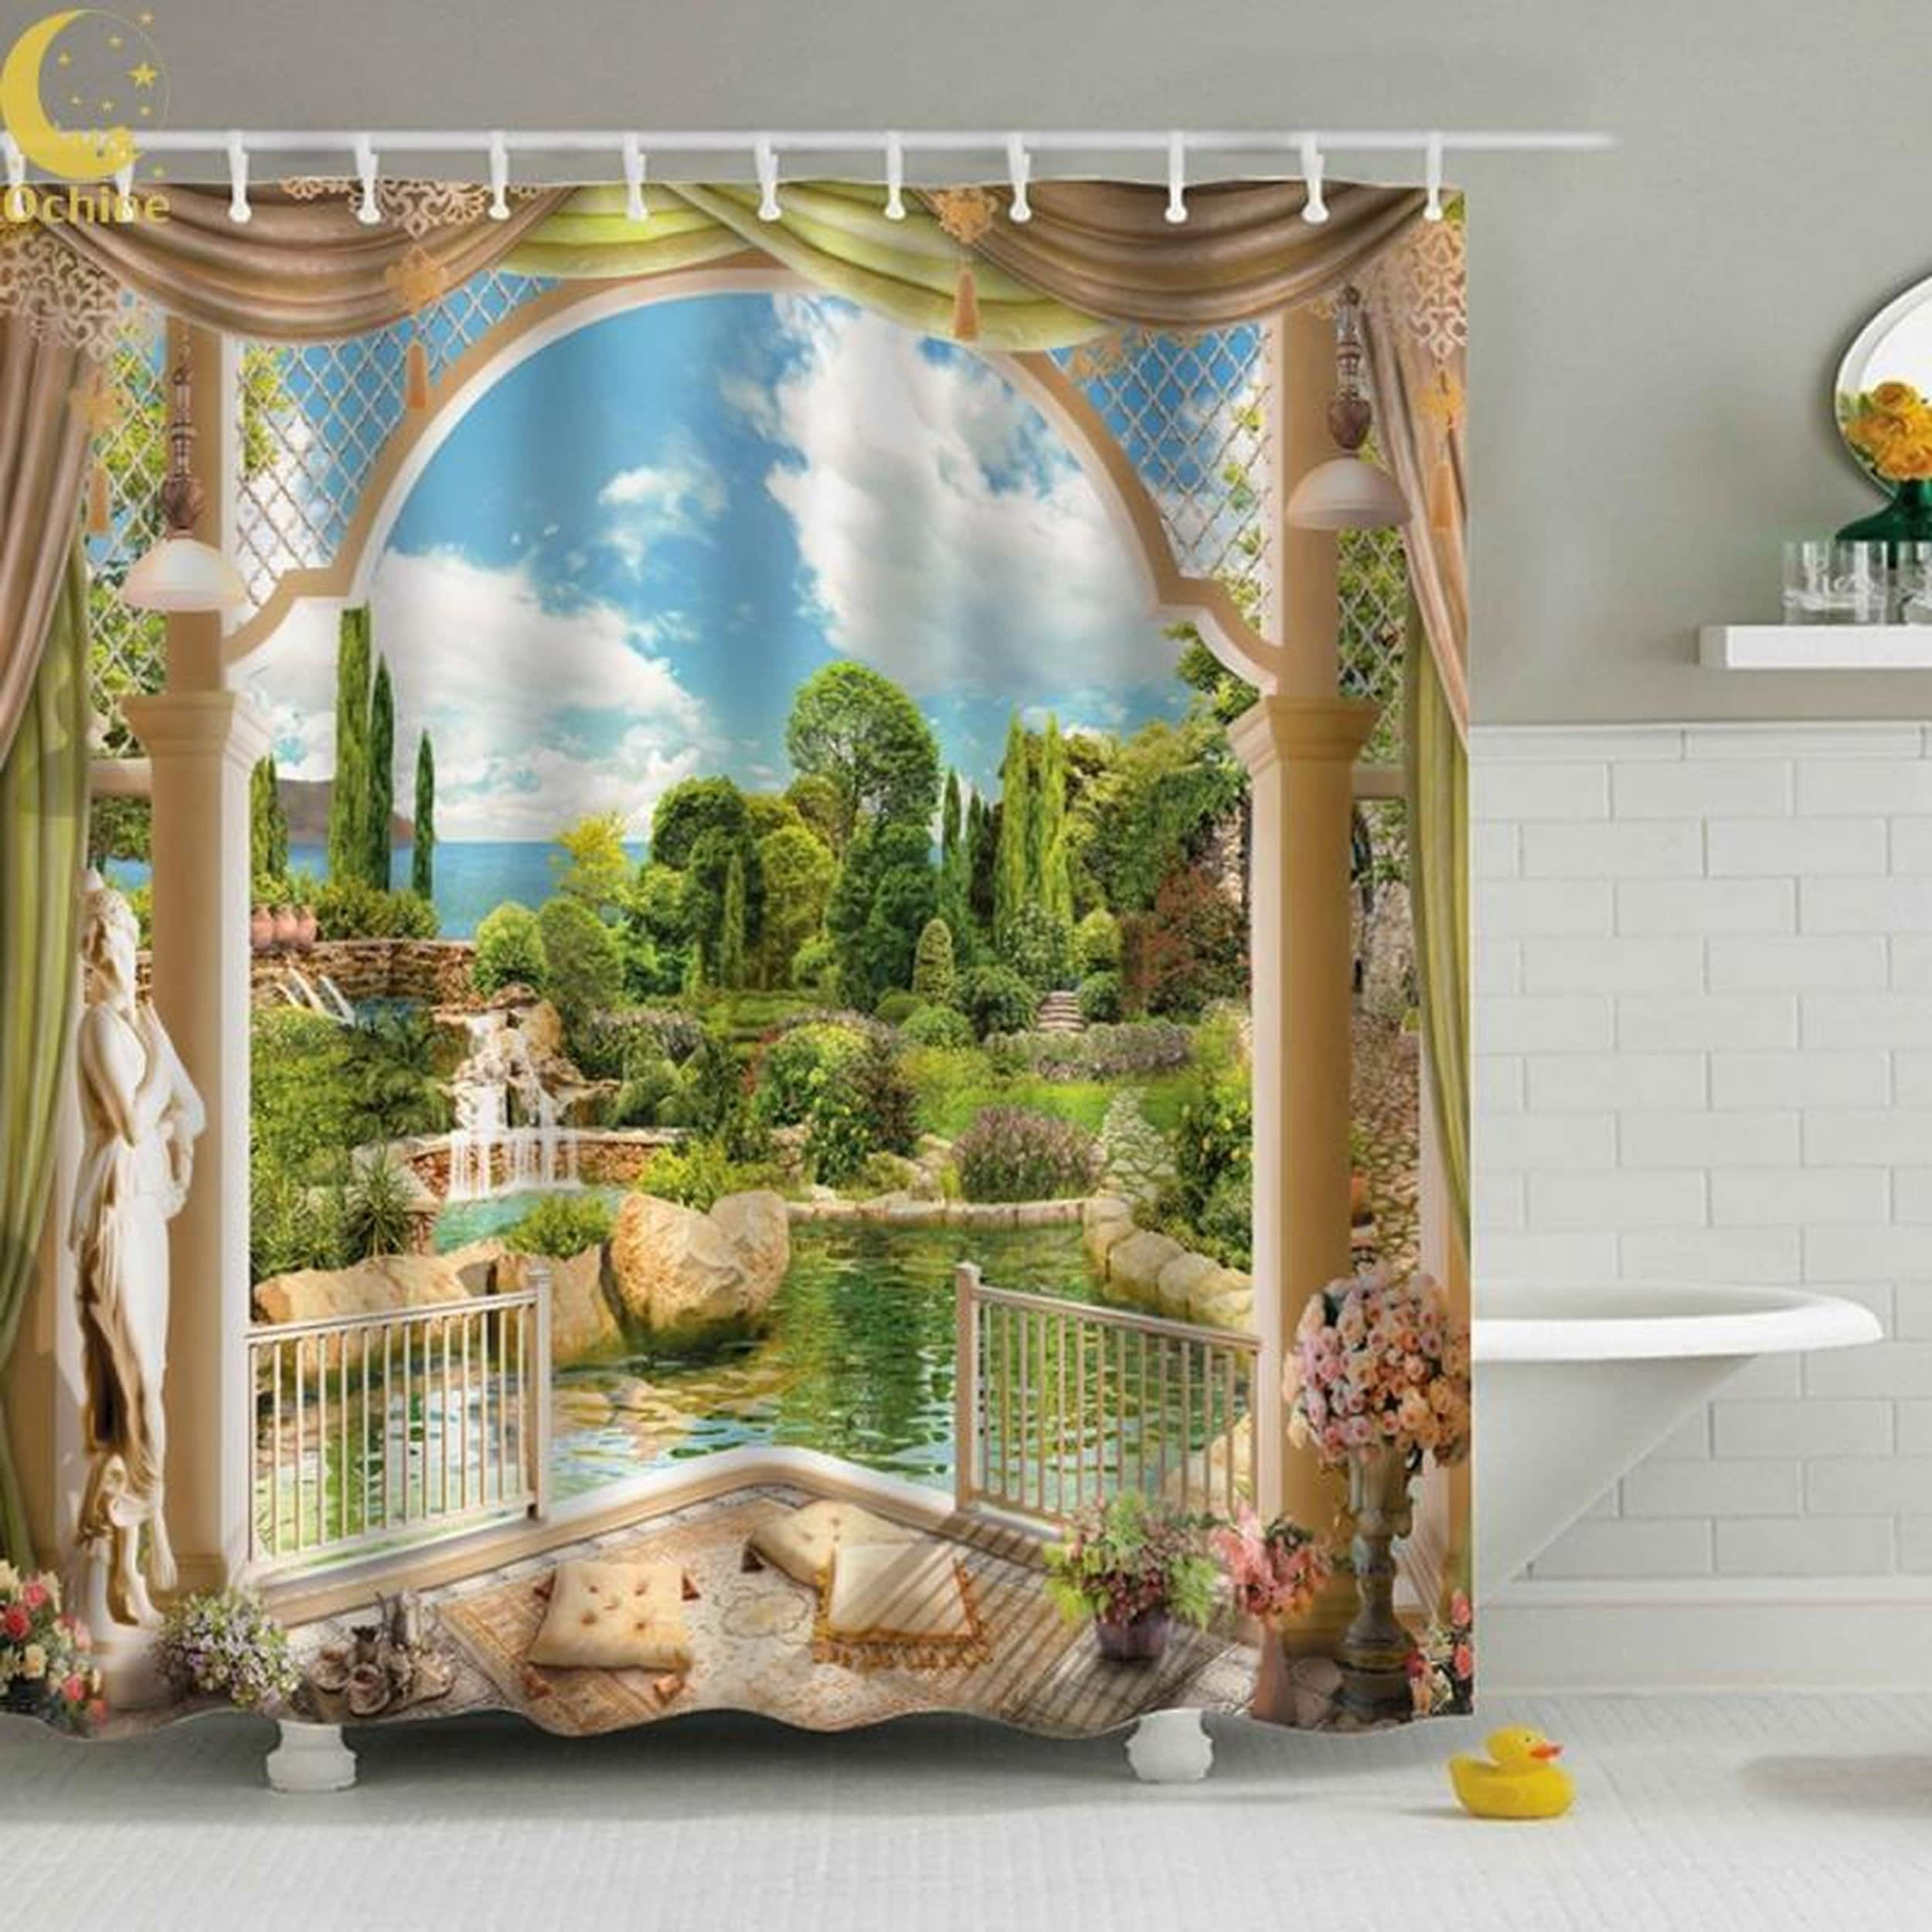 Palm Tree Shower Curtain 180 180cm Hooks Included